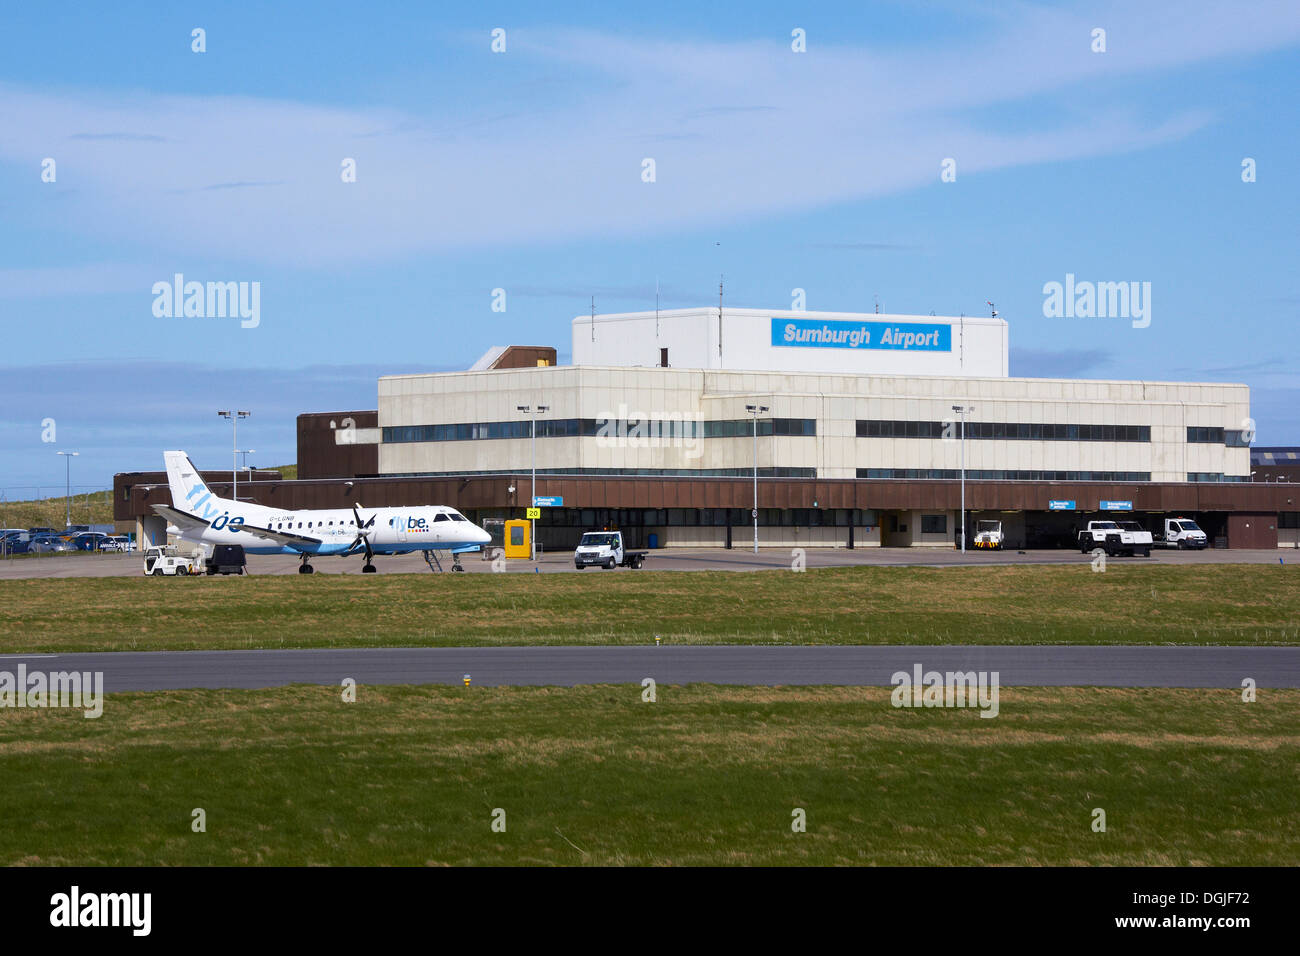 Sumburgh Airport. - Stock Image